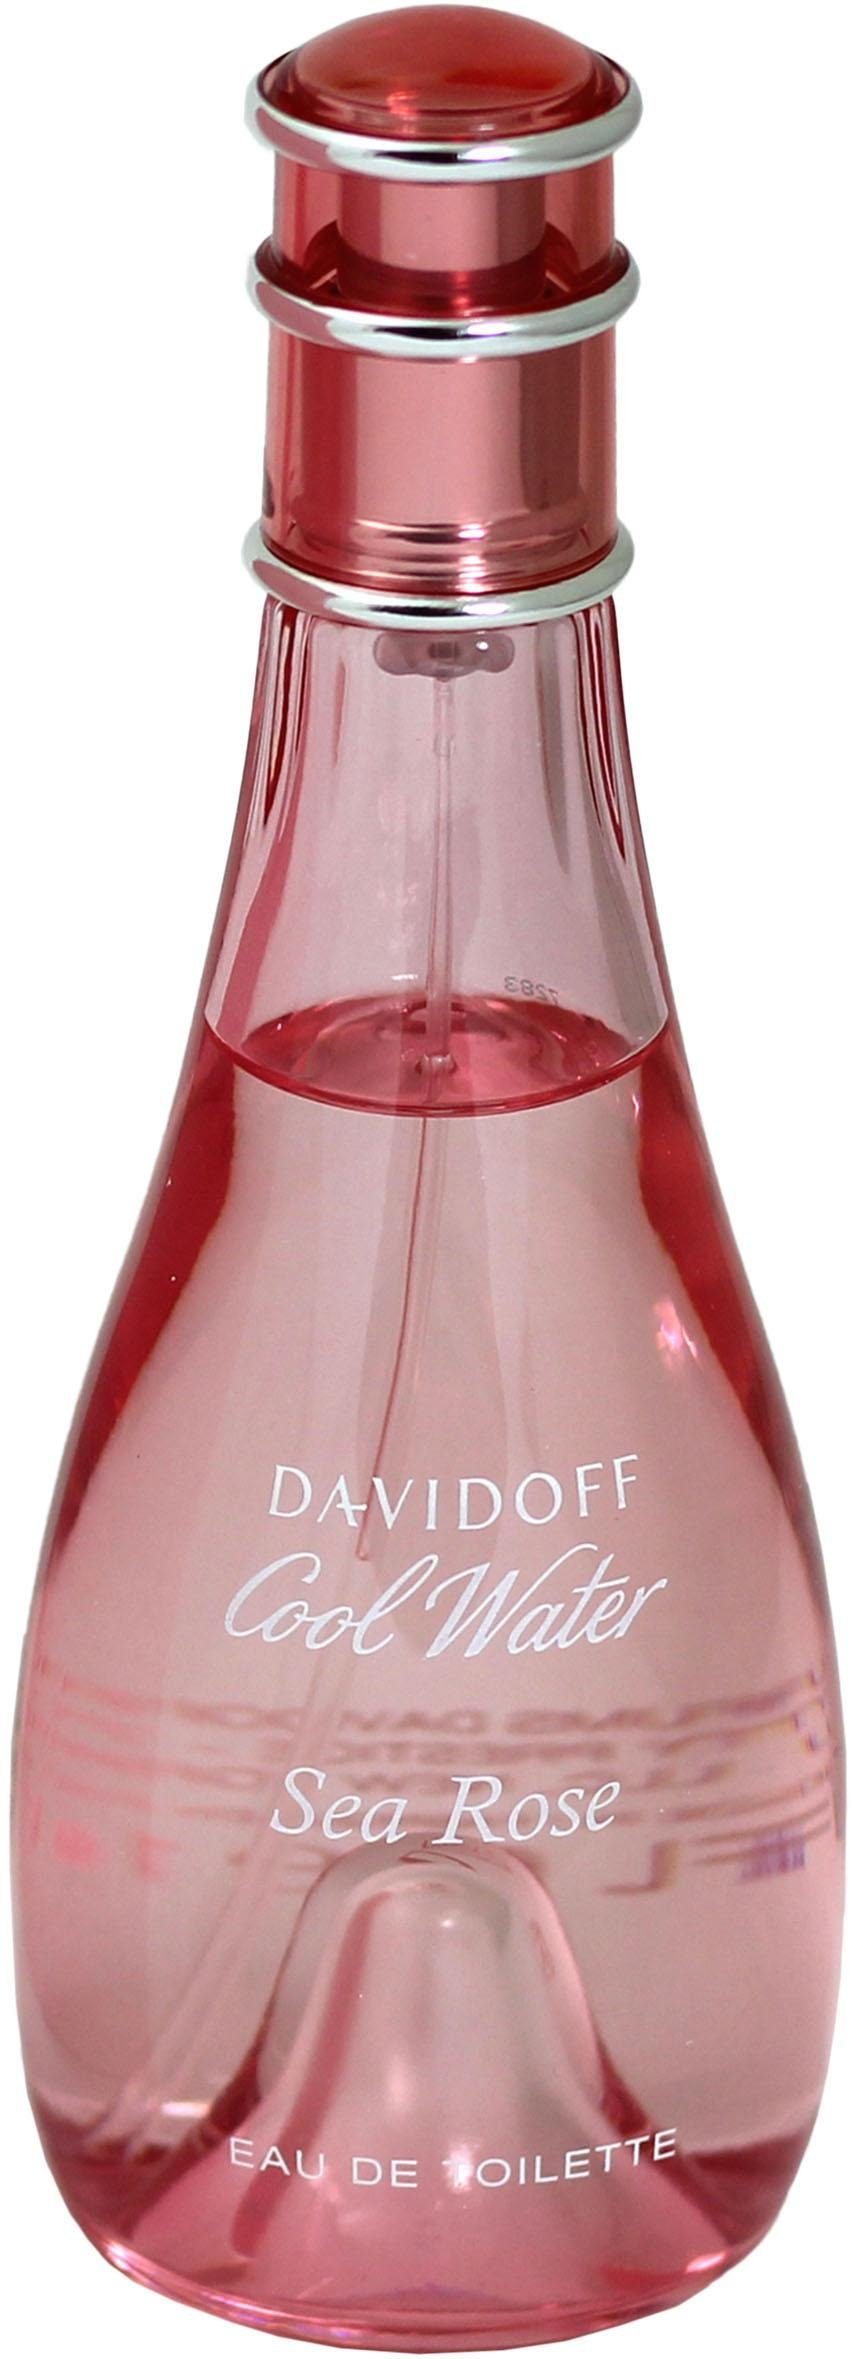 Davidoff, »Cool Water Woman Sea Rose«, Eau de Toilette